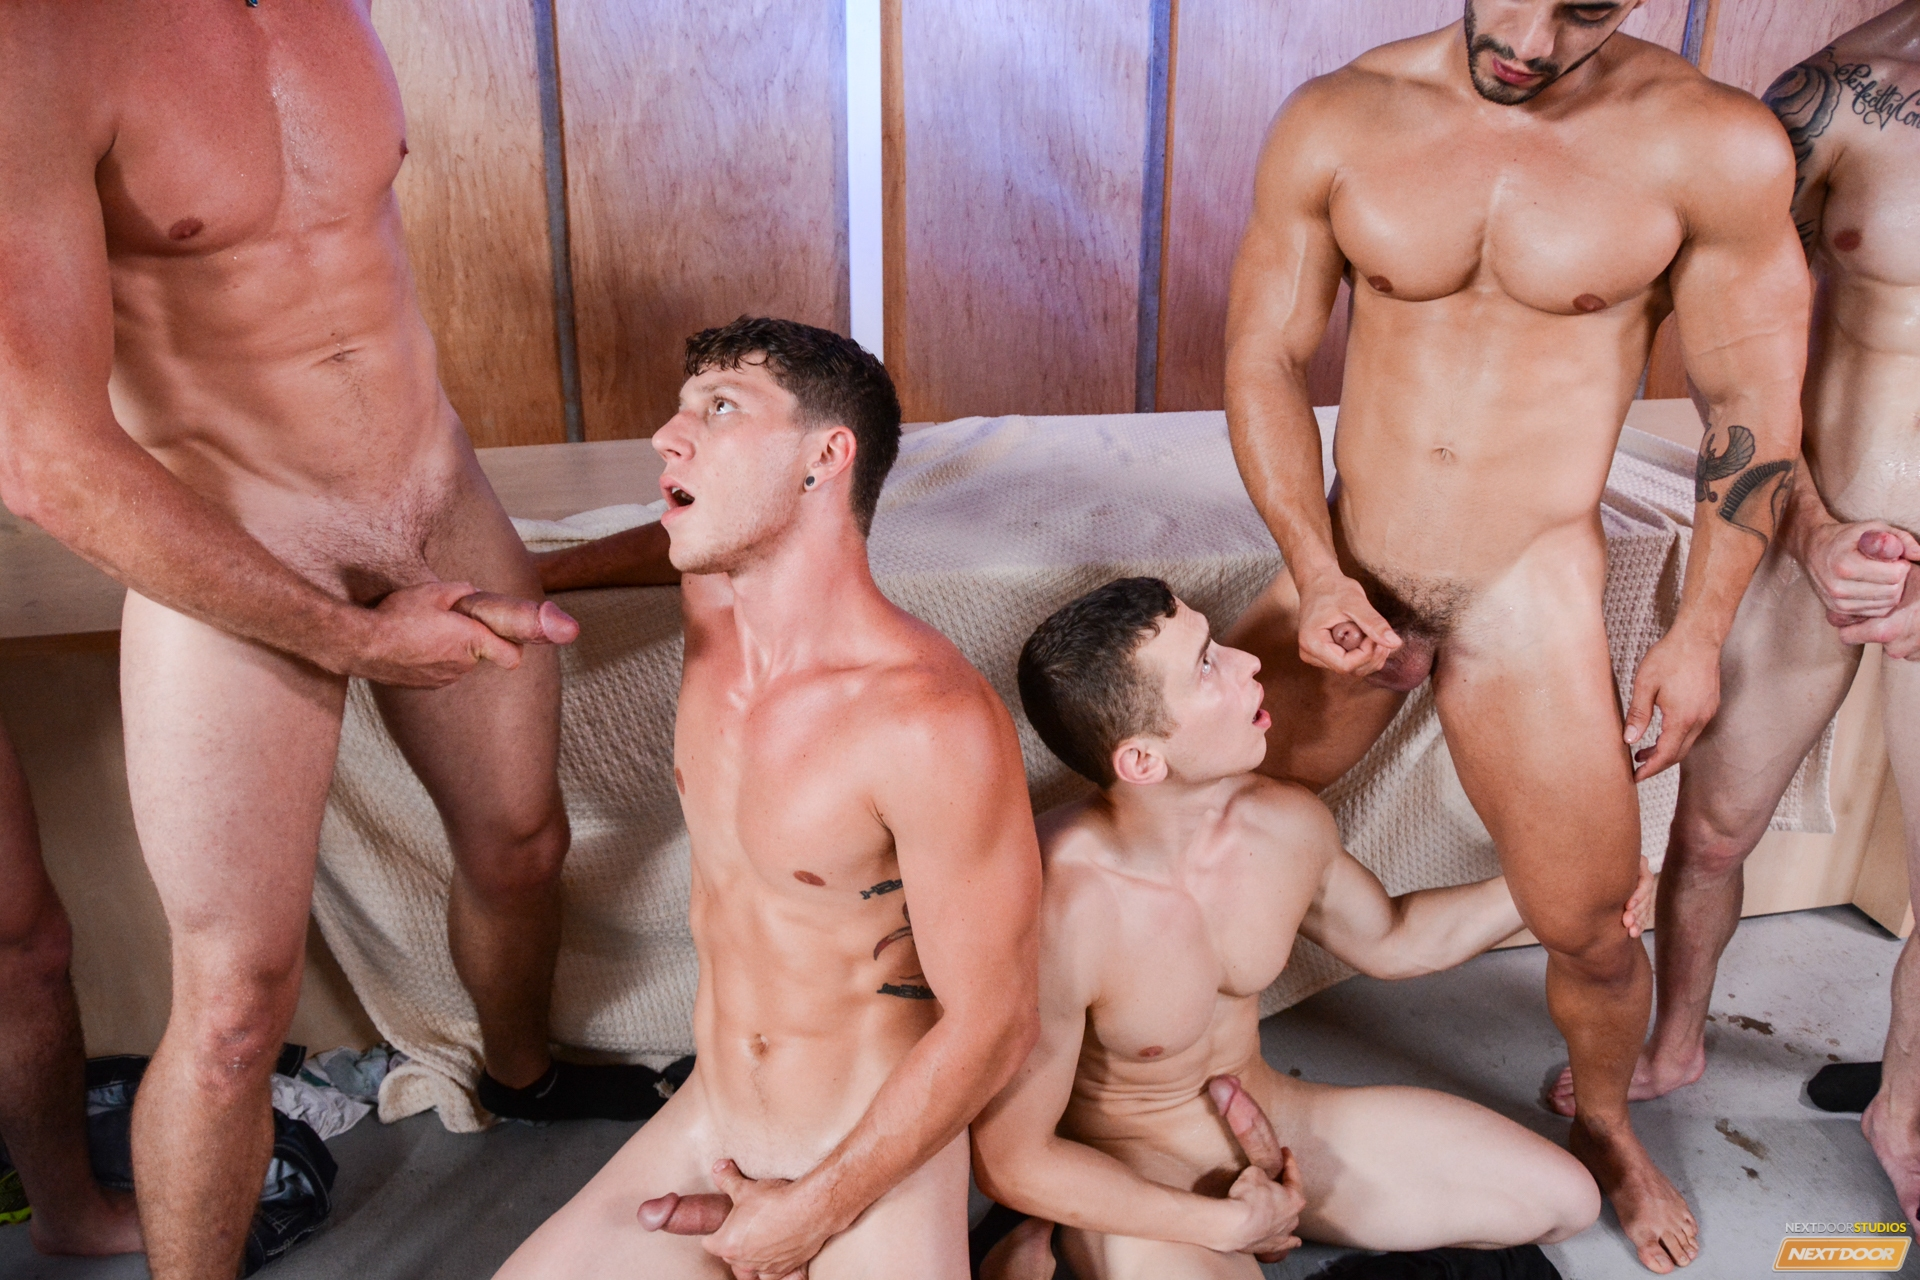 male sex orgies Gay porn group sex What started as a  lazy day b 5 min - 100% - Itstwinks78 · Teens emo movies gay What started as.